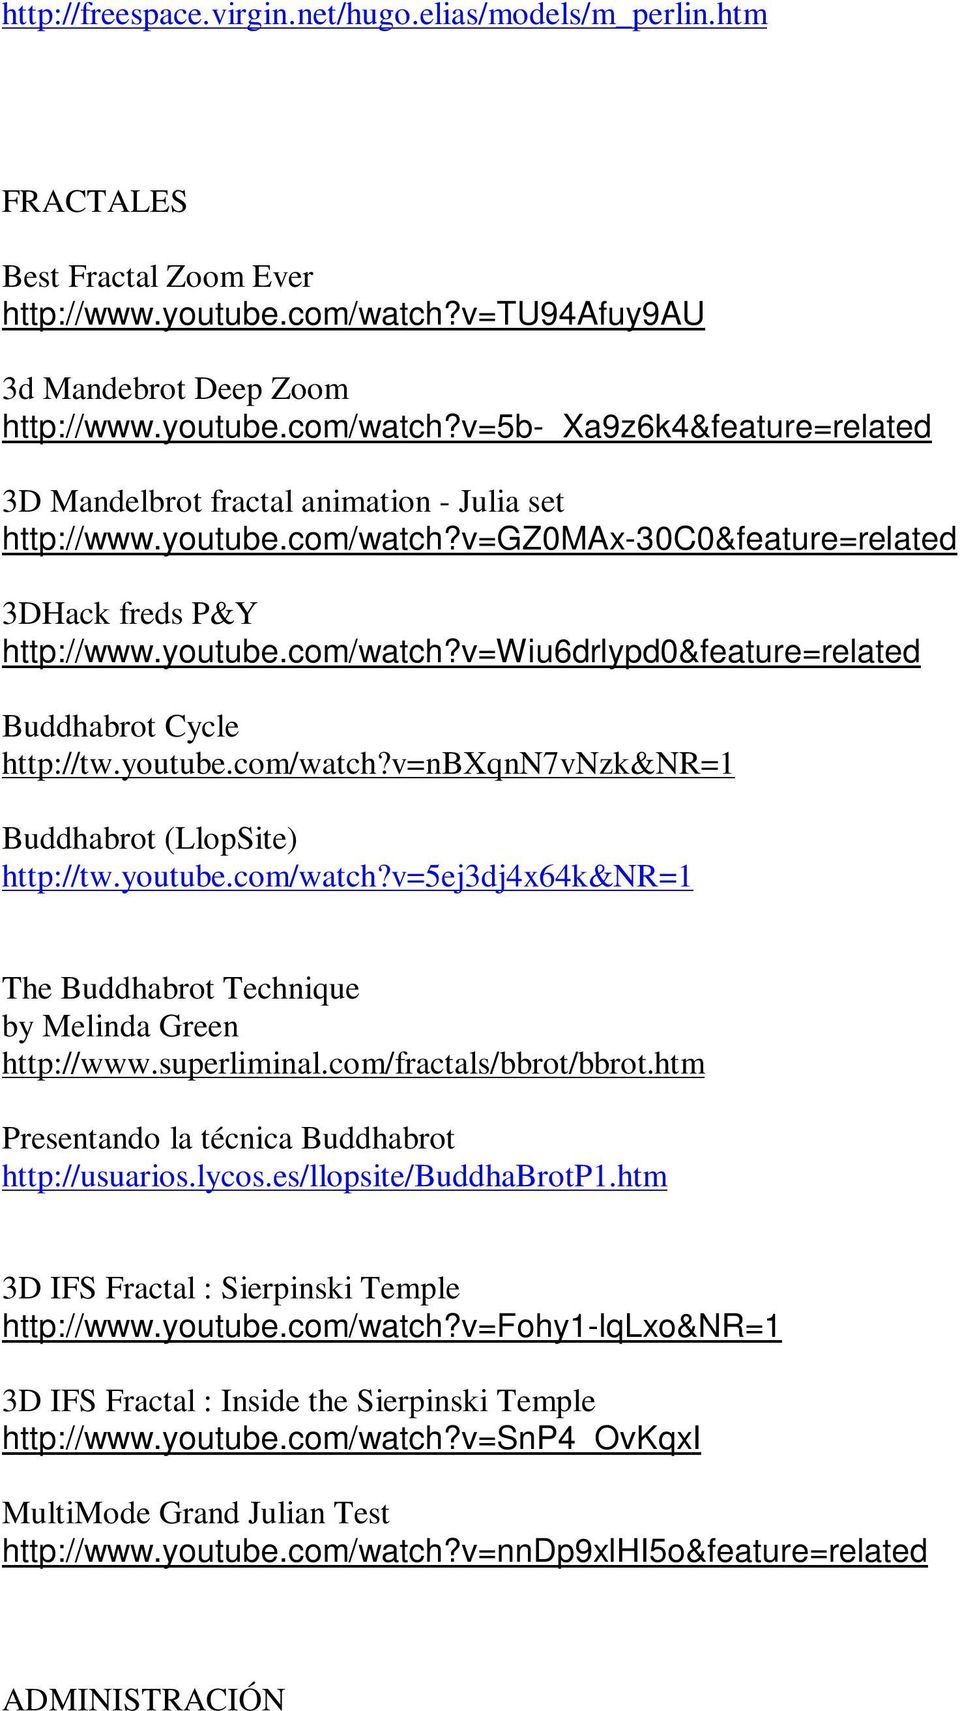 youtube.com/watch?v=wiu6drlypd0&feature=related Buddhabrot Cycle http://tw.youtube.com/watch?v=nbxqnn7vnzk&nr=1 Buddhabrot (LlopSite) http://tw.youtube.com/watch?v=5ej3dj4x64k&nr=1 The Buddhabrot Technique by Melinda Green http://www.